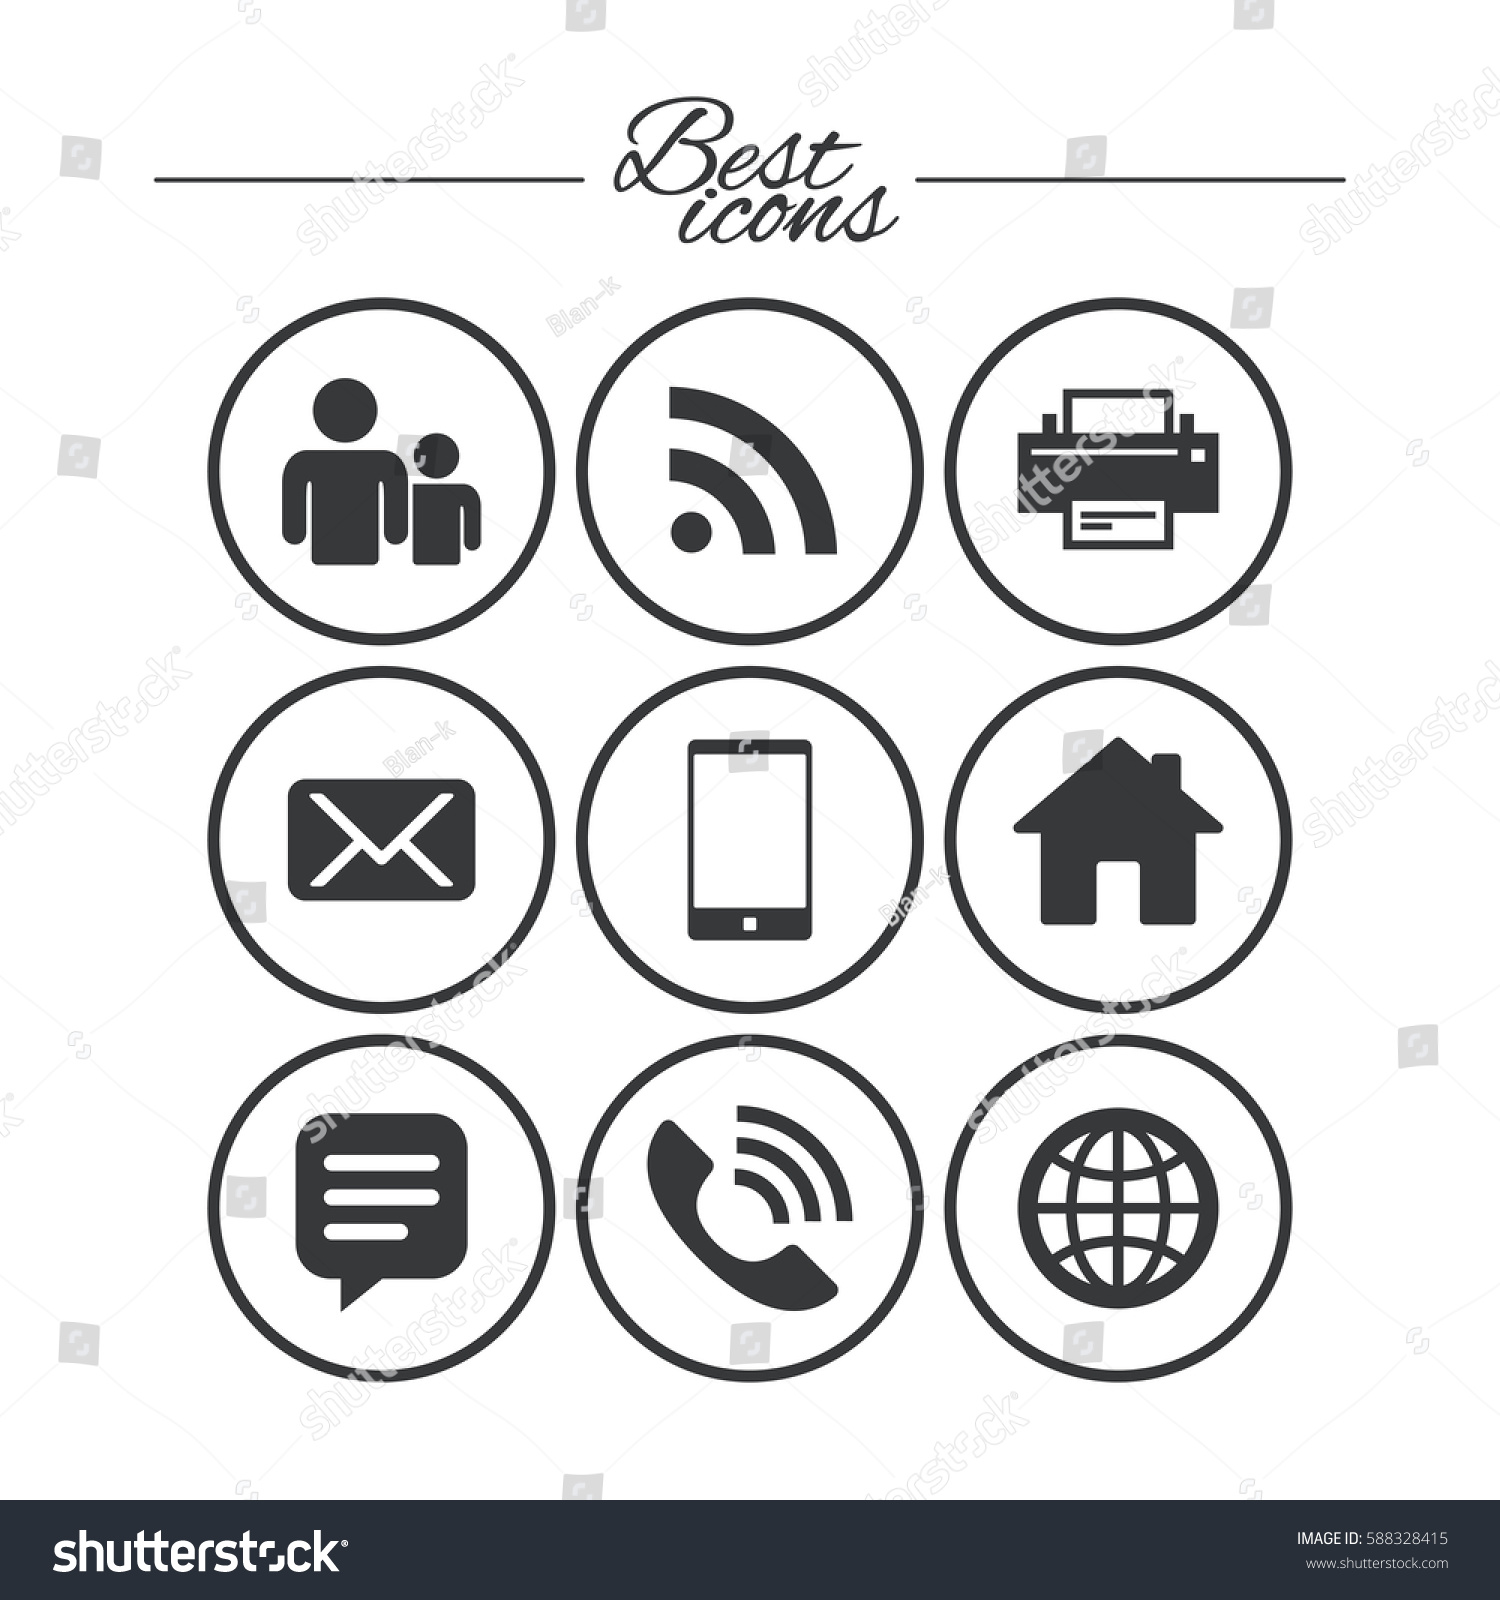 Contact mail icons communication signs email stock vector communication signs e mail chat message and phone biocorpaavc Gallery